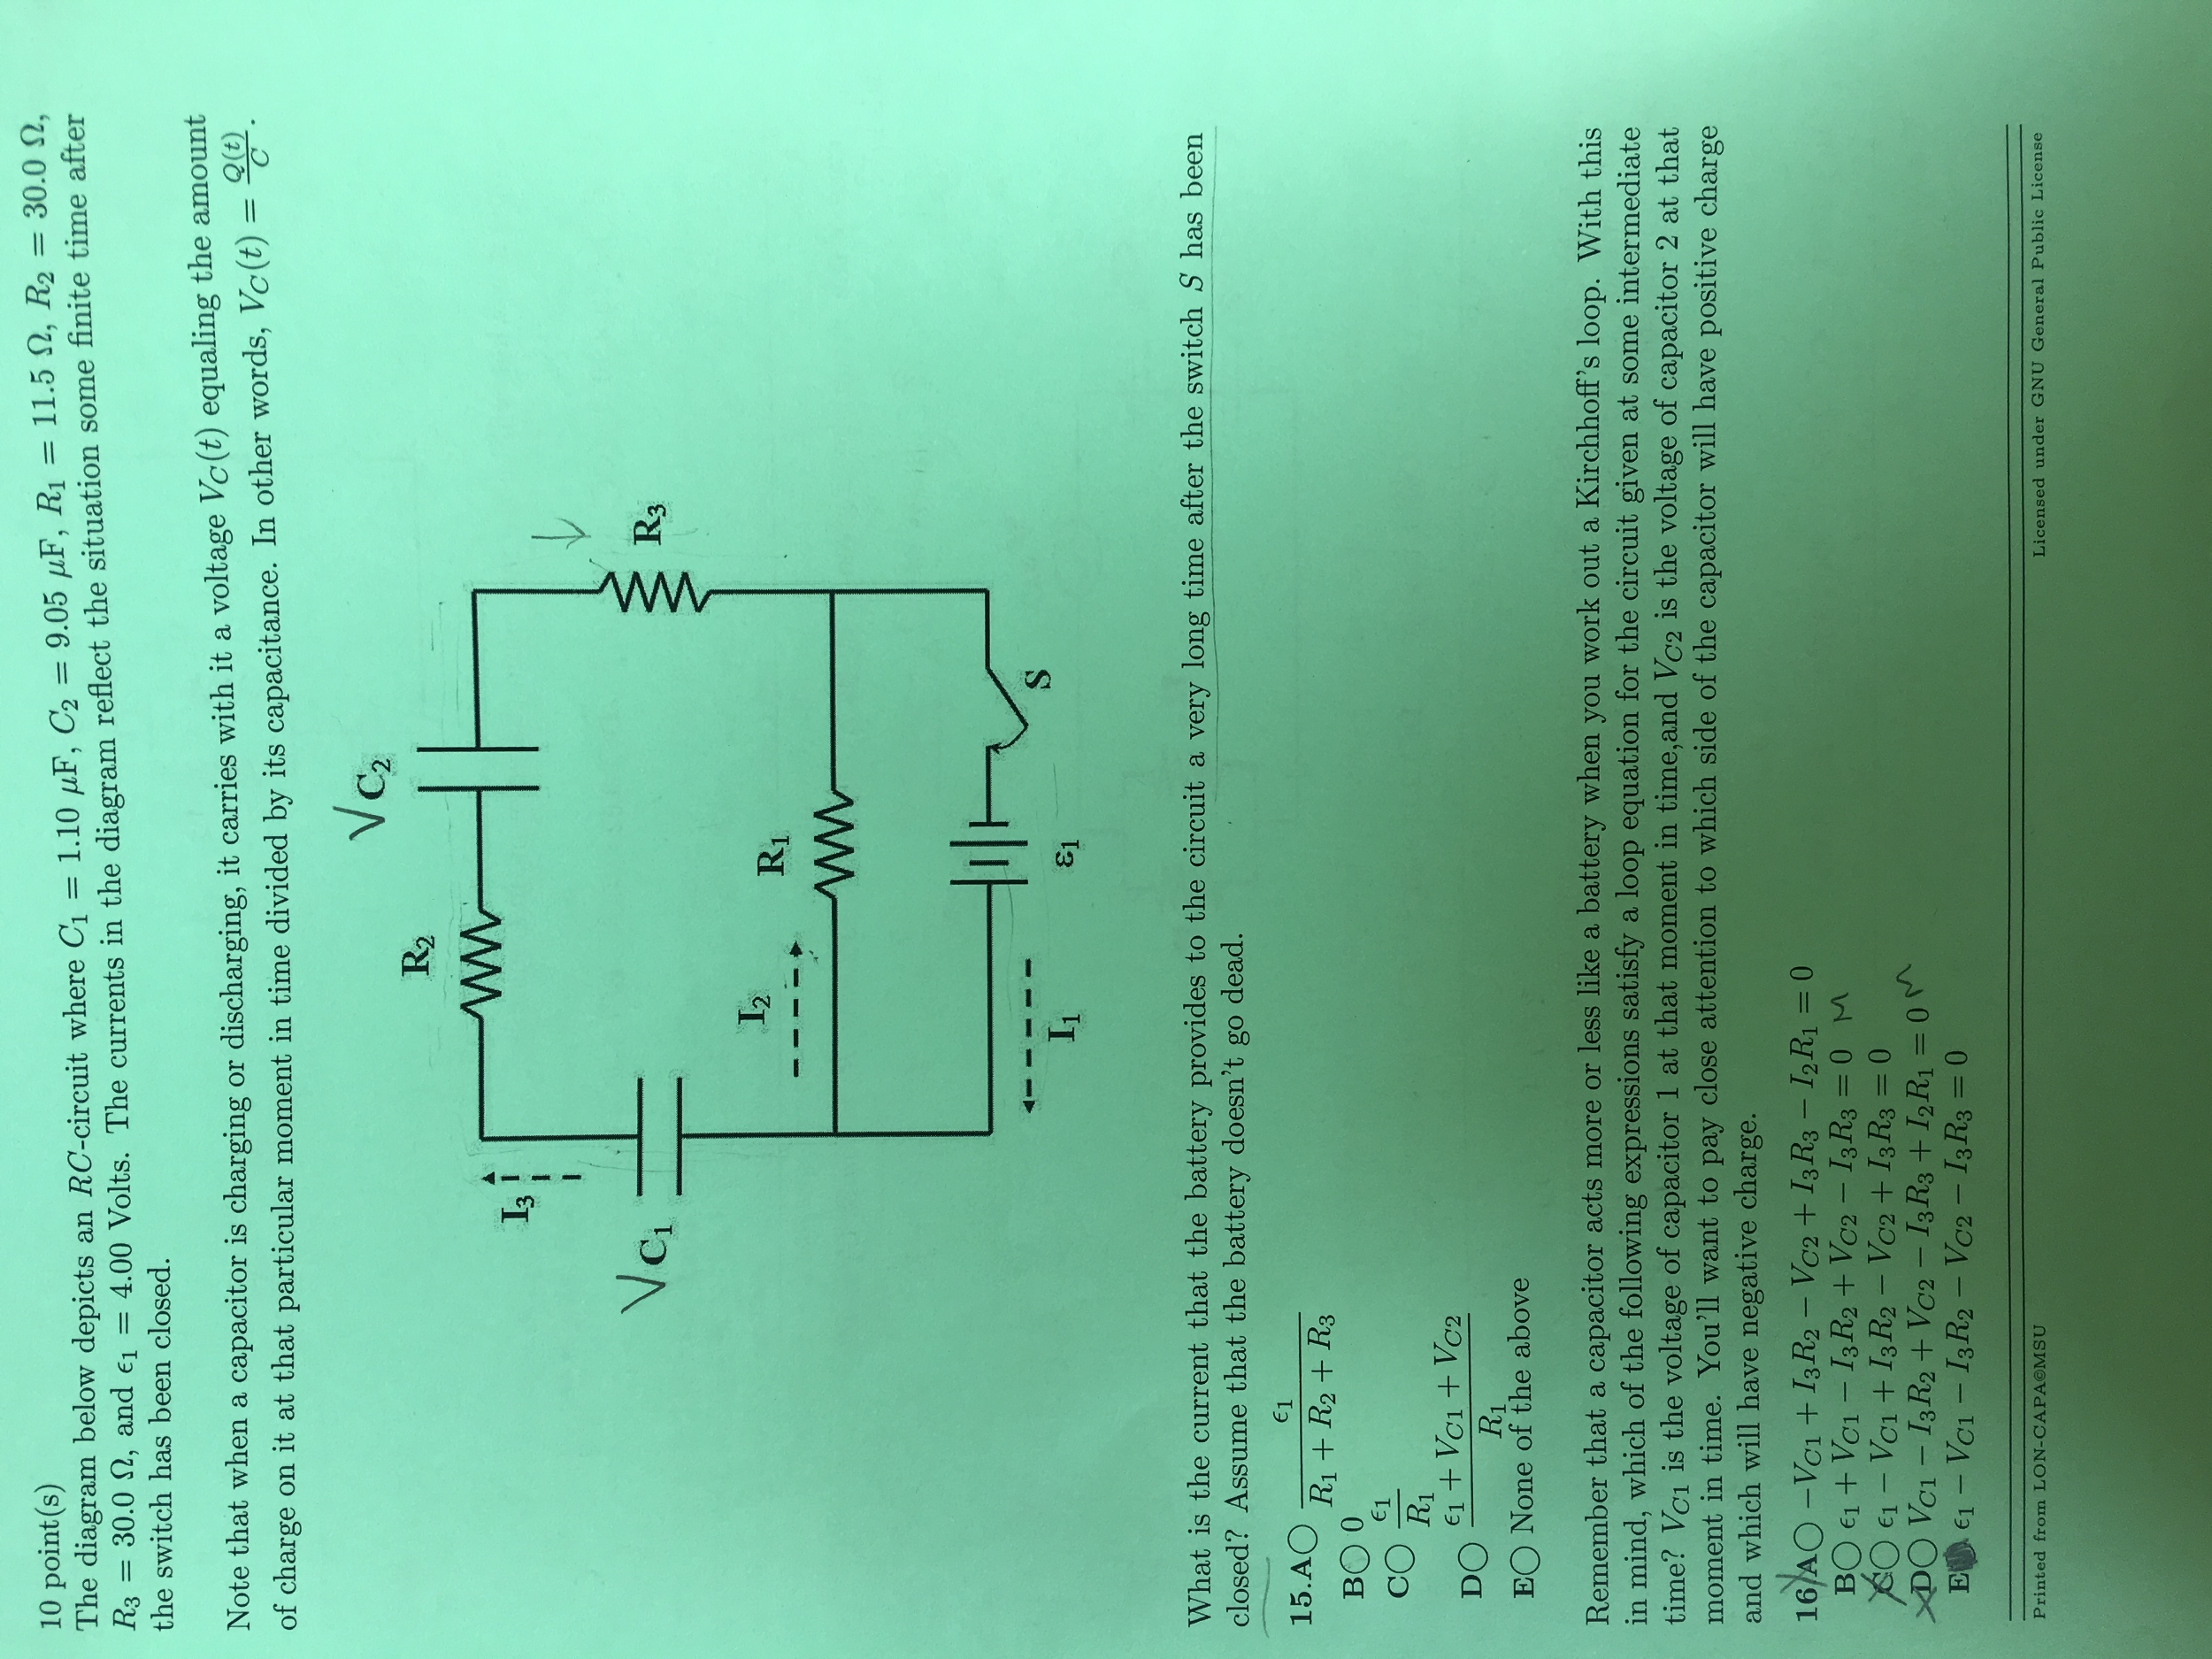 Solved: The Diagram Below Depicts An RC-circuit Where C_1 ...